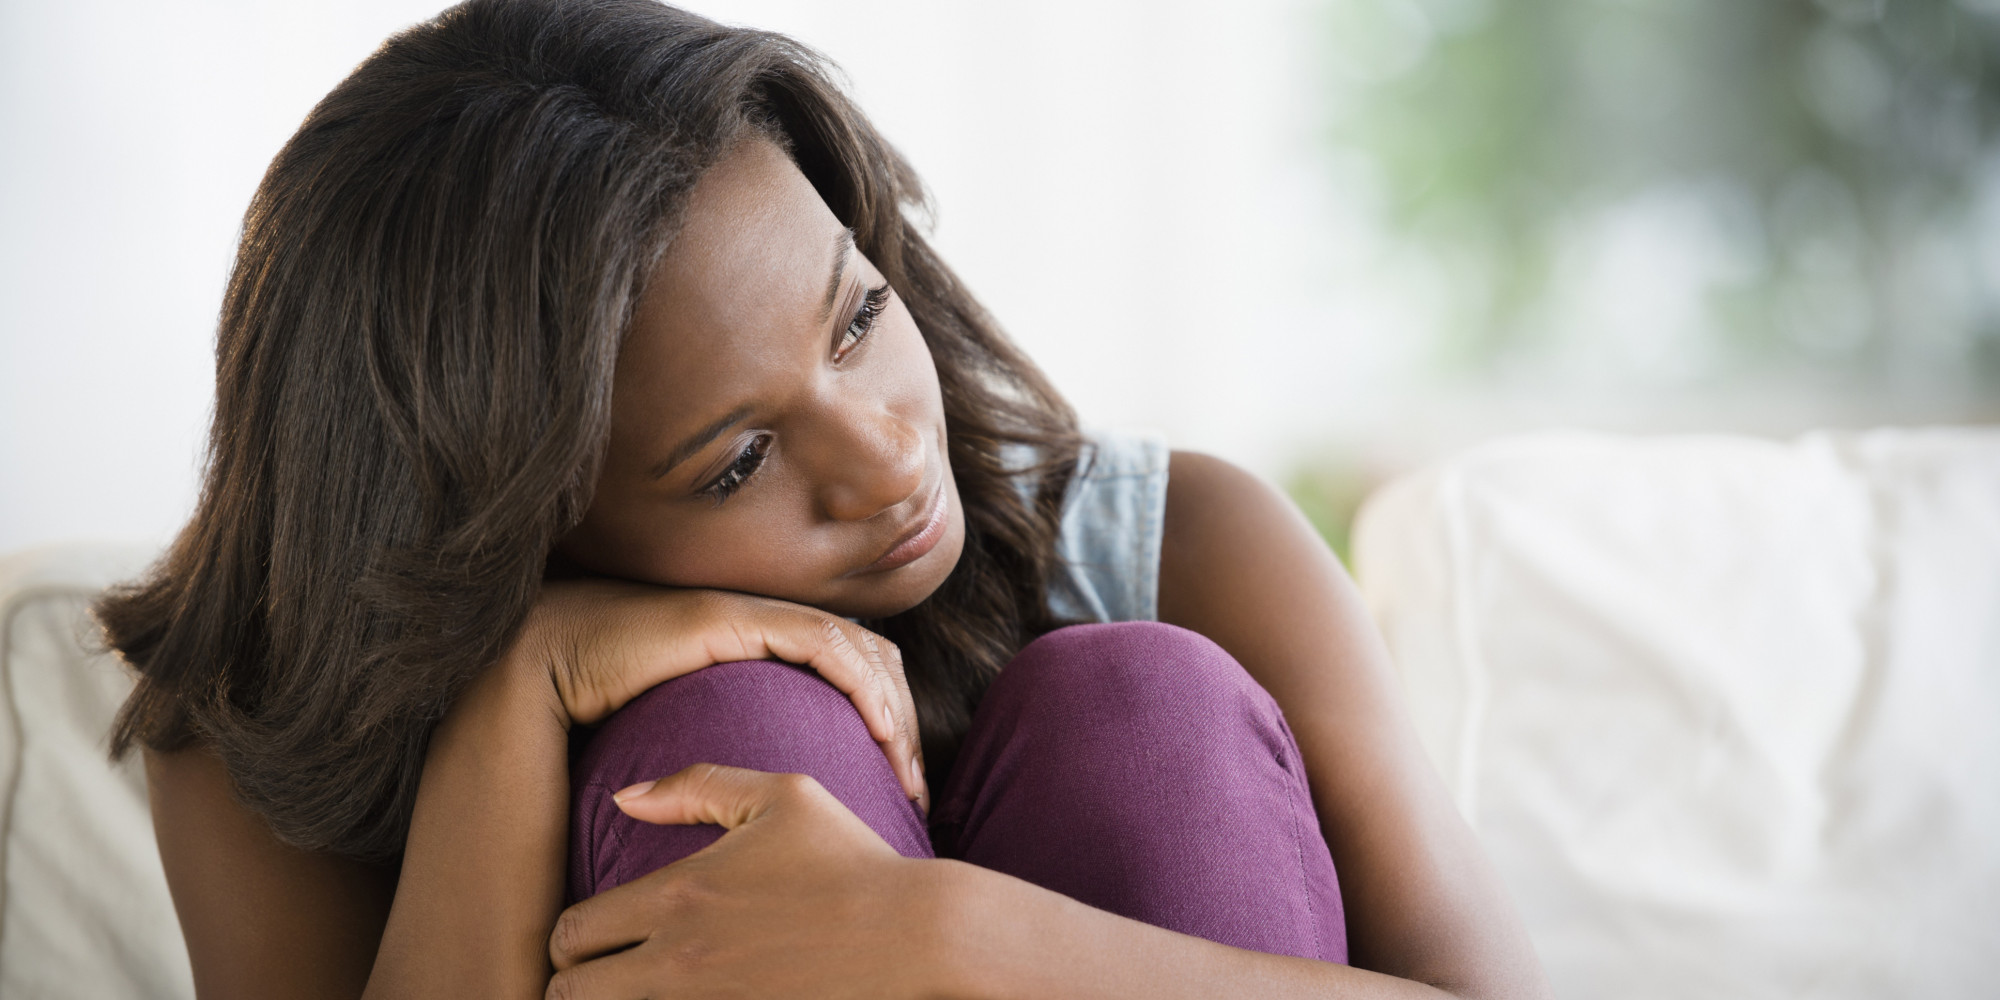 How to Recognize the Warning Signs of Mental Illness in Women